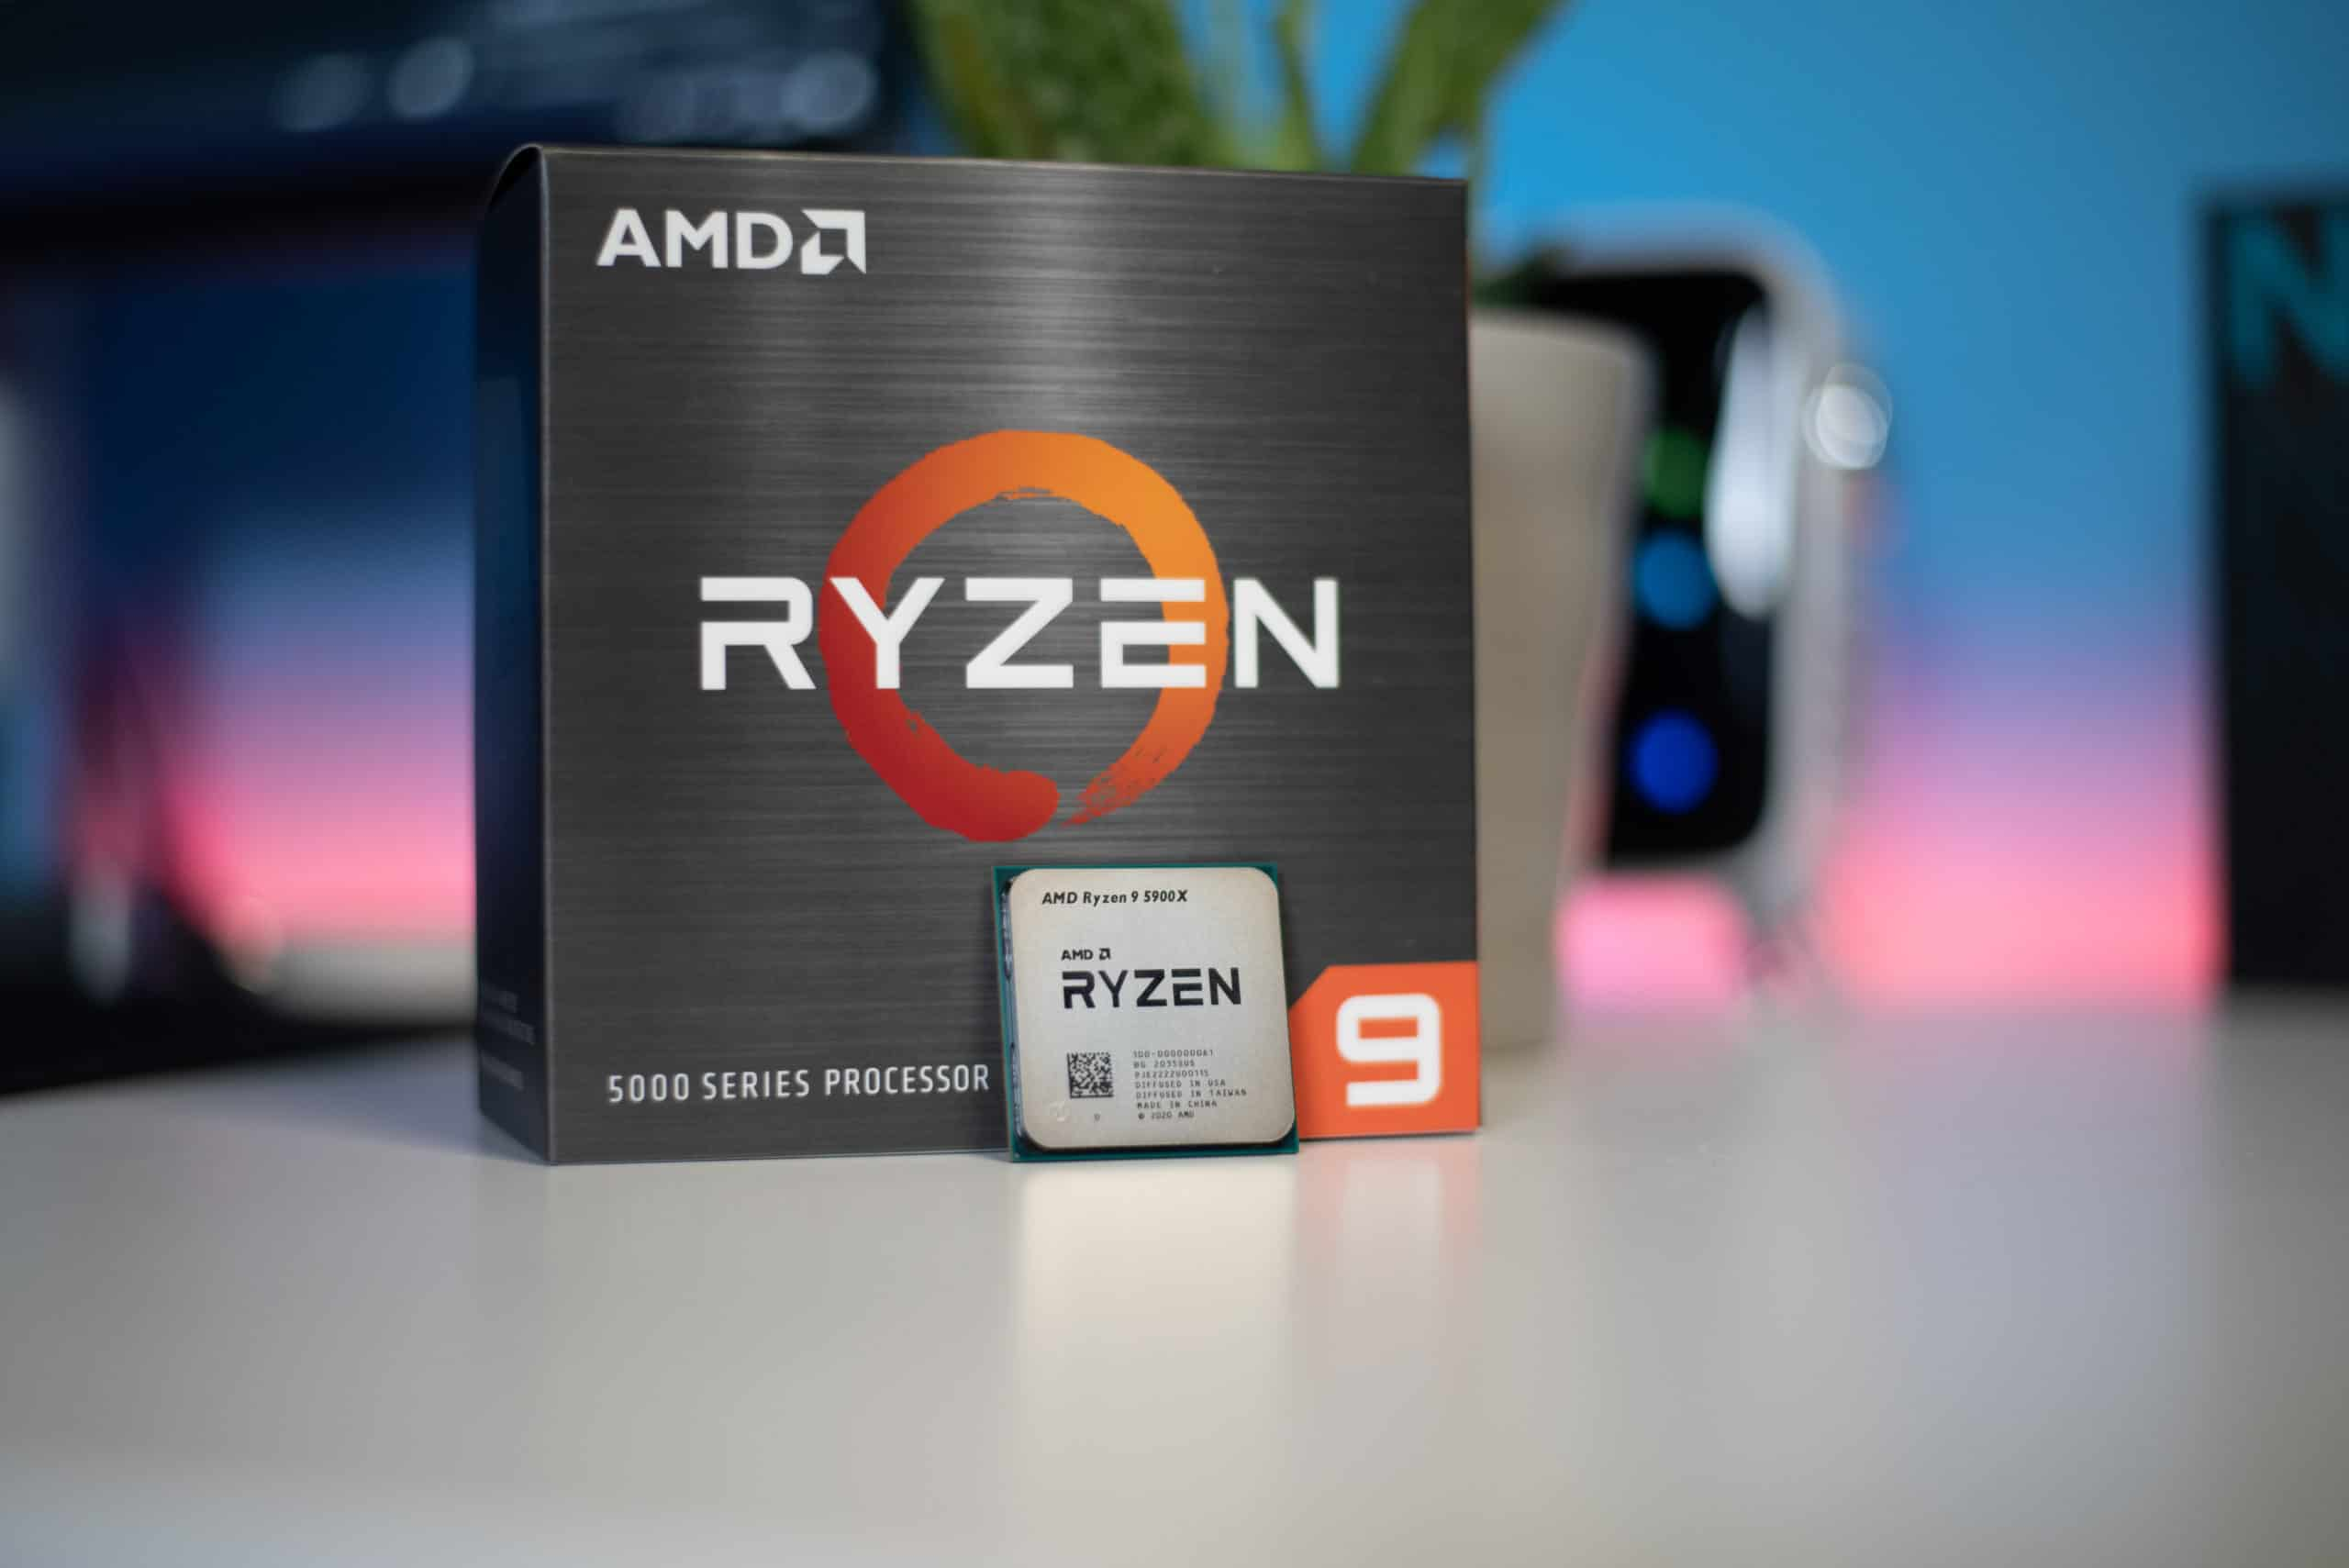 AMD Ryzen 9 5900X review: Waanzinnige sprong in prestaties